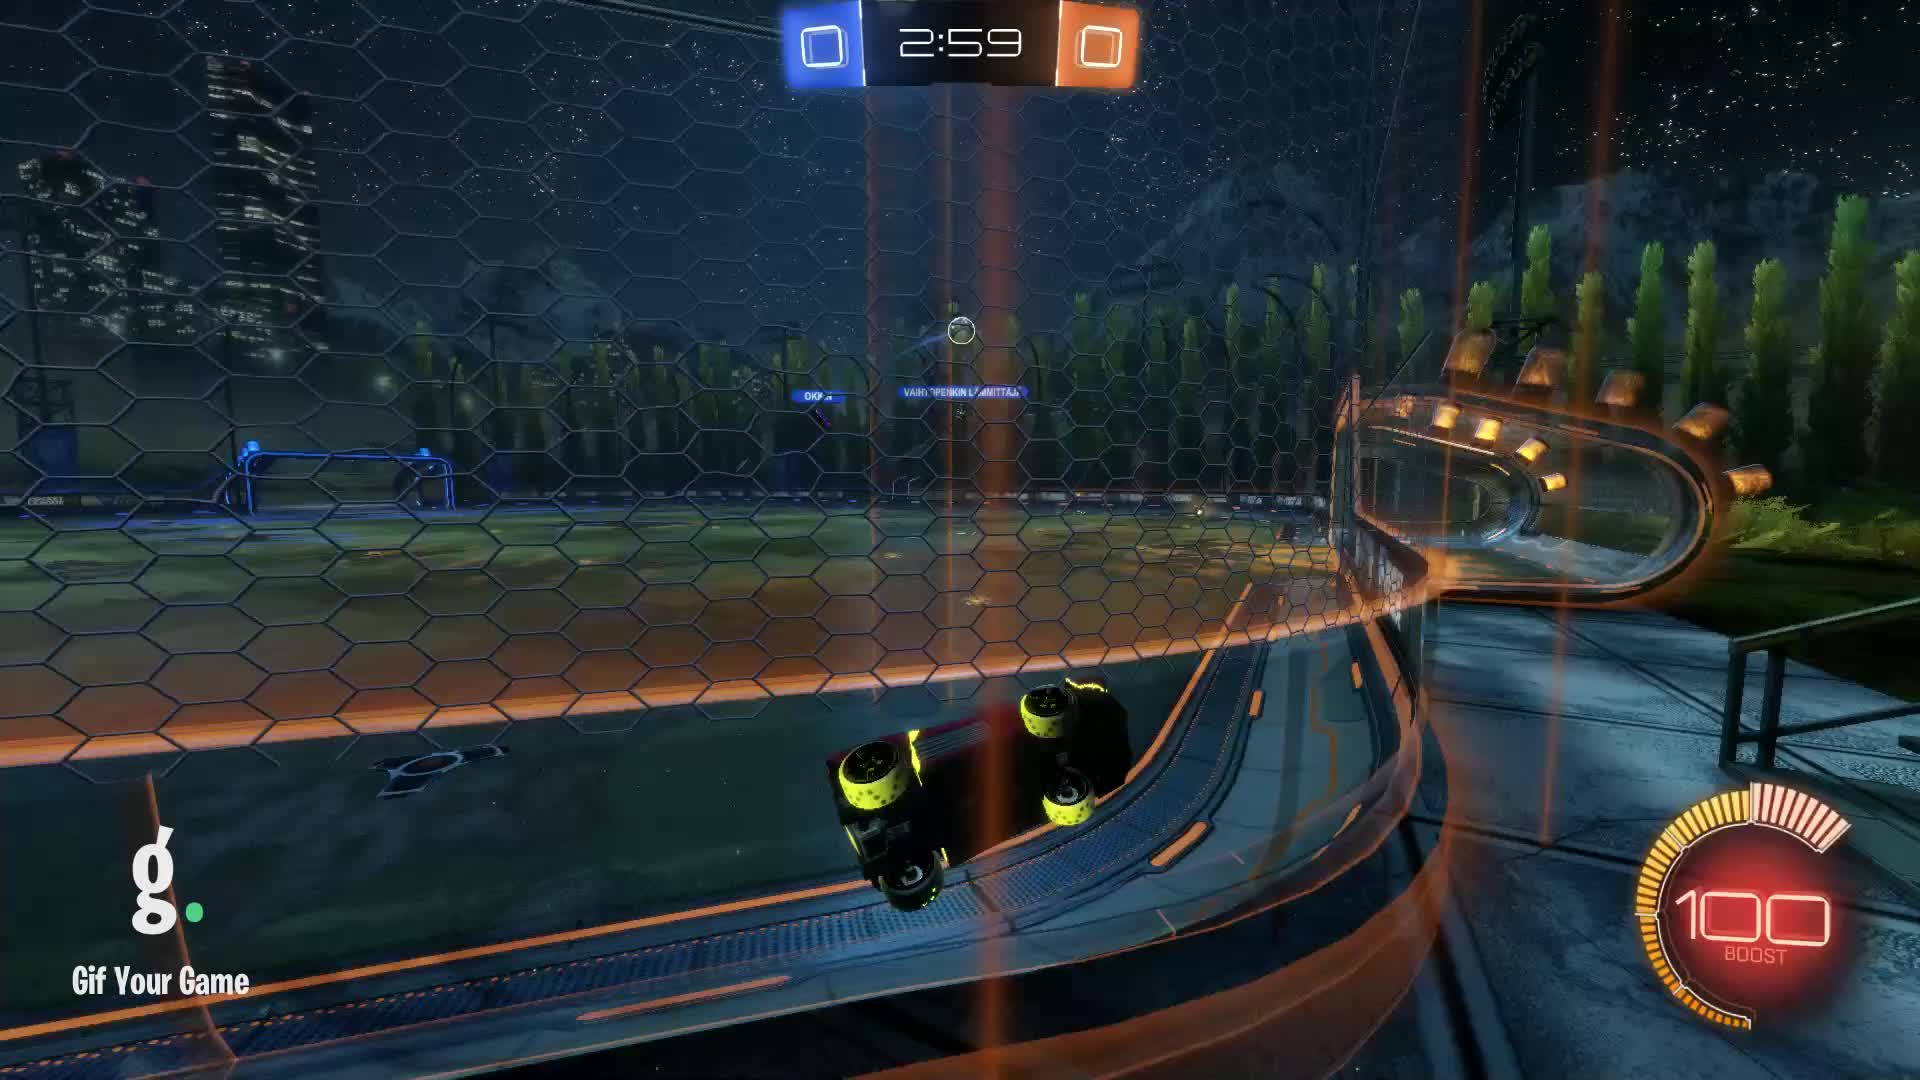 Calaboth, Gif Your Game, GifYourGame, Goal, Rocket League, RocketLeague, Goal 1: Calaboth GIFs